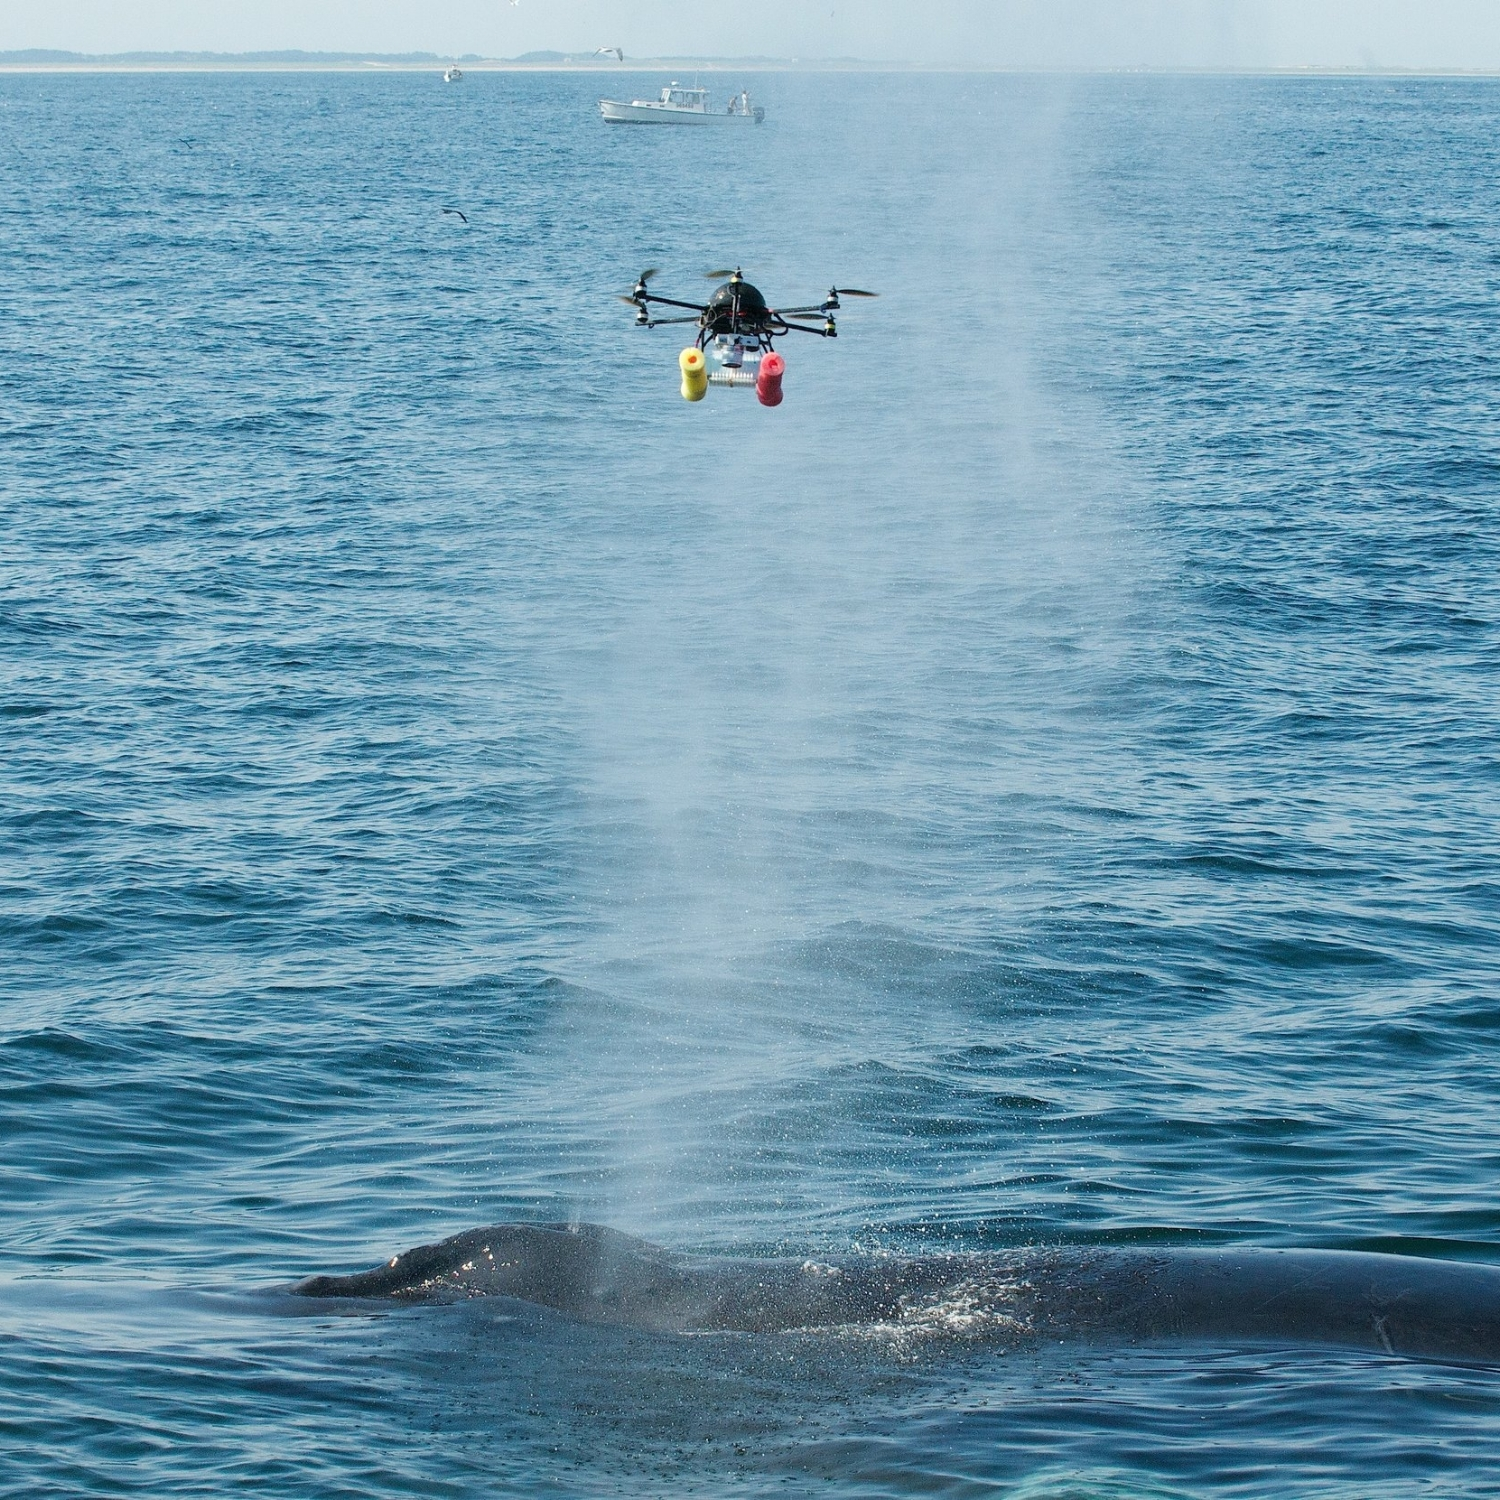 An unmanned hexacopter drone flies through humpback whale expiratory blow, collecting samples. Once collected, we take these samples to the laboratory to conduct microbiological and genetic testing, helping determine whale health status. Research conducted under NOAA permit.